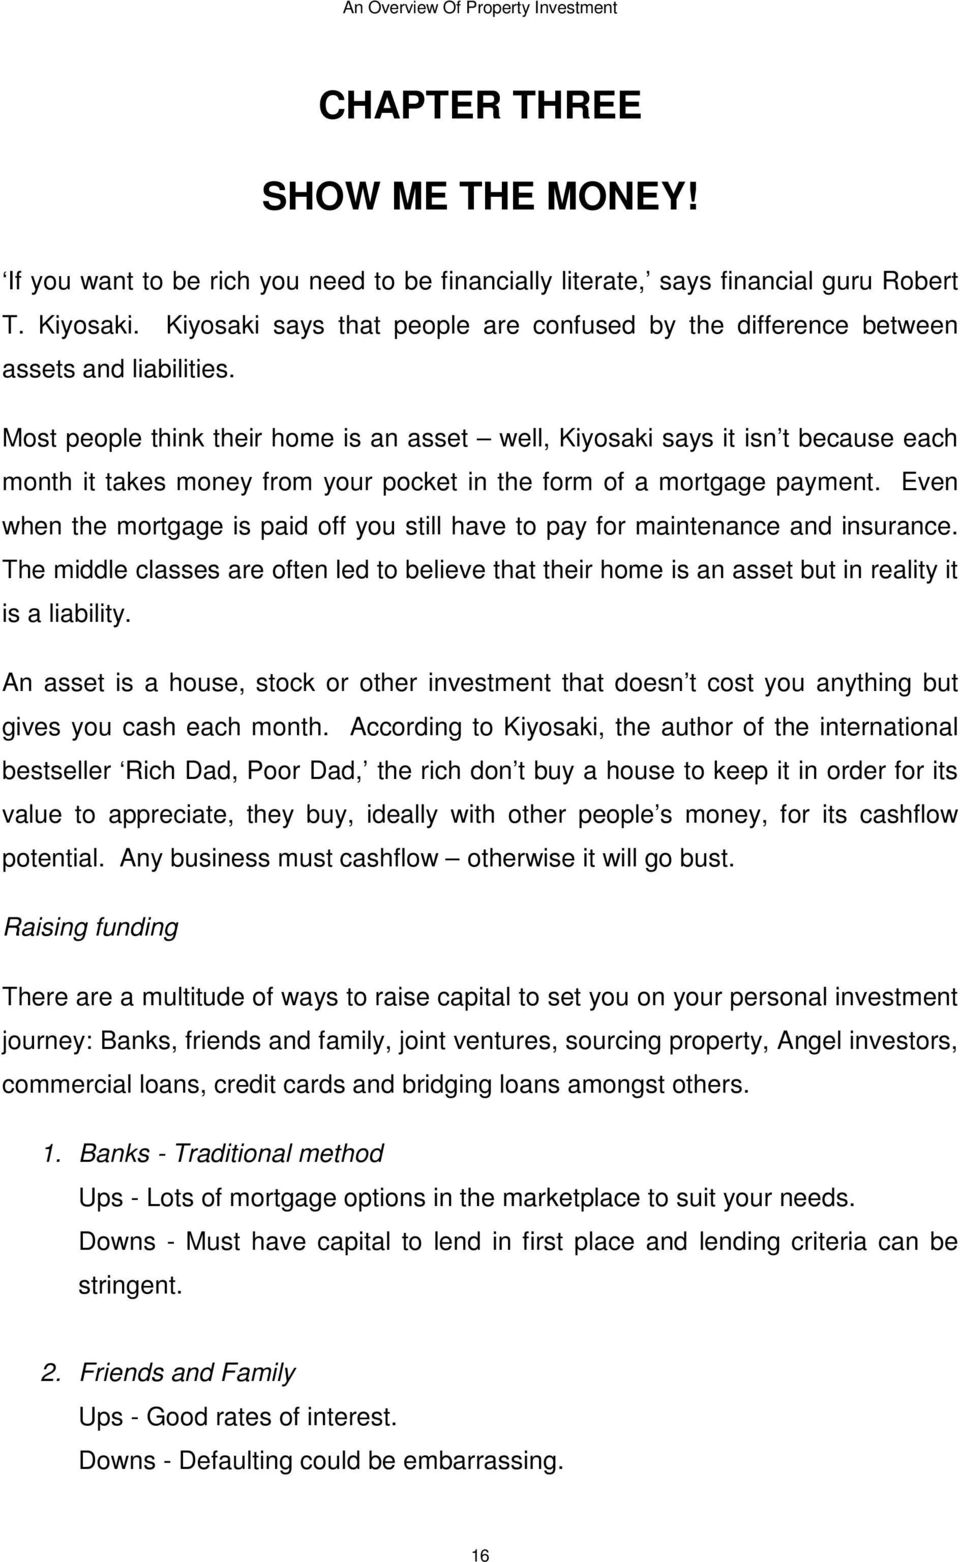 Most people think their home is an asset well, Kiyosaki says it isn t because each month it takes money from your pocket in the form of a mortgage payment.